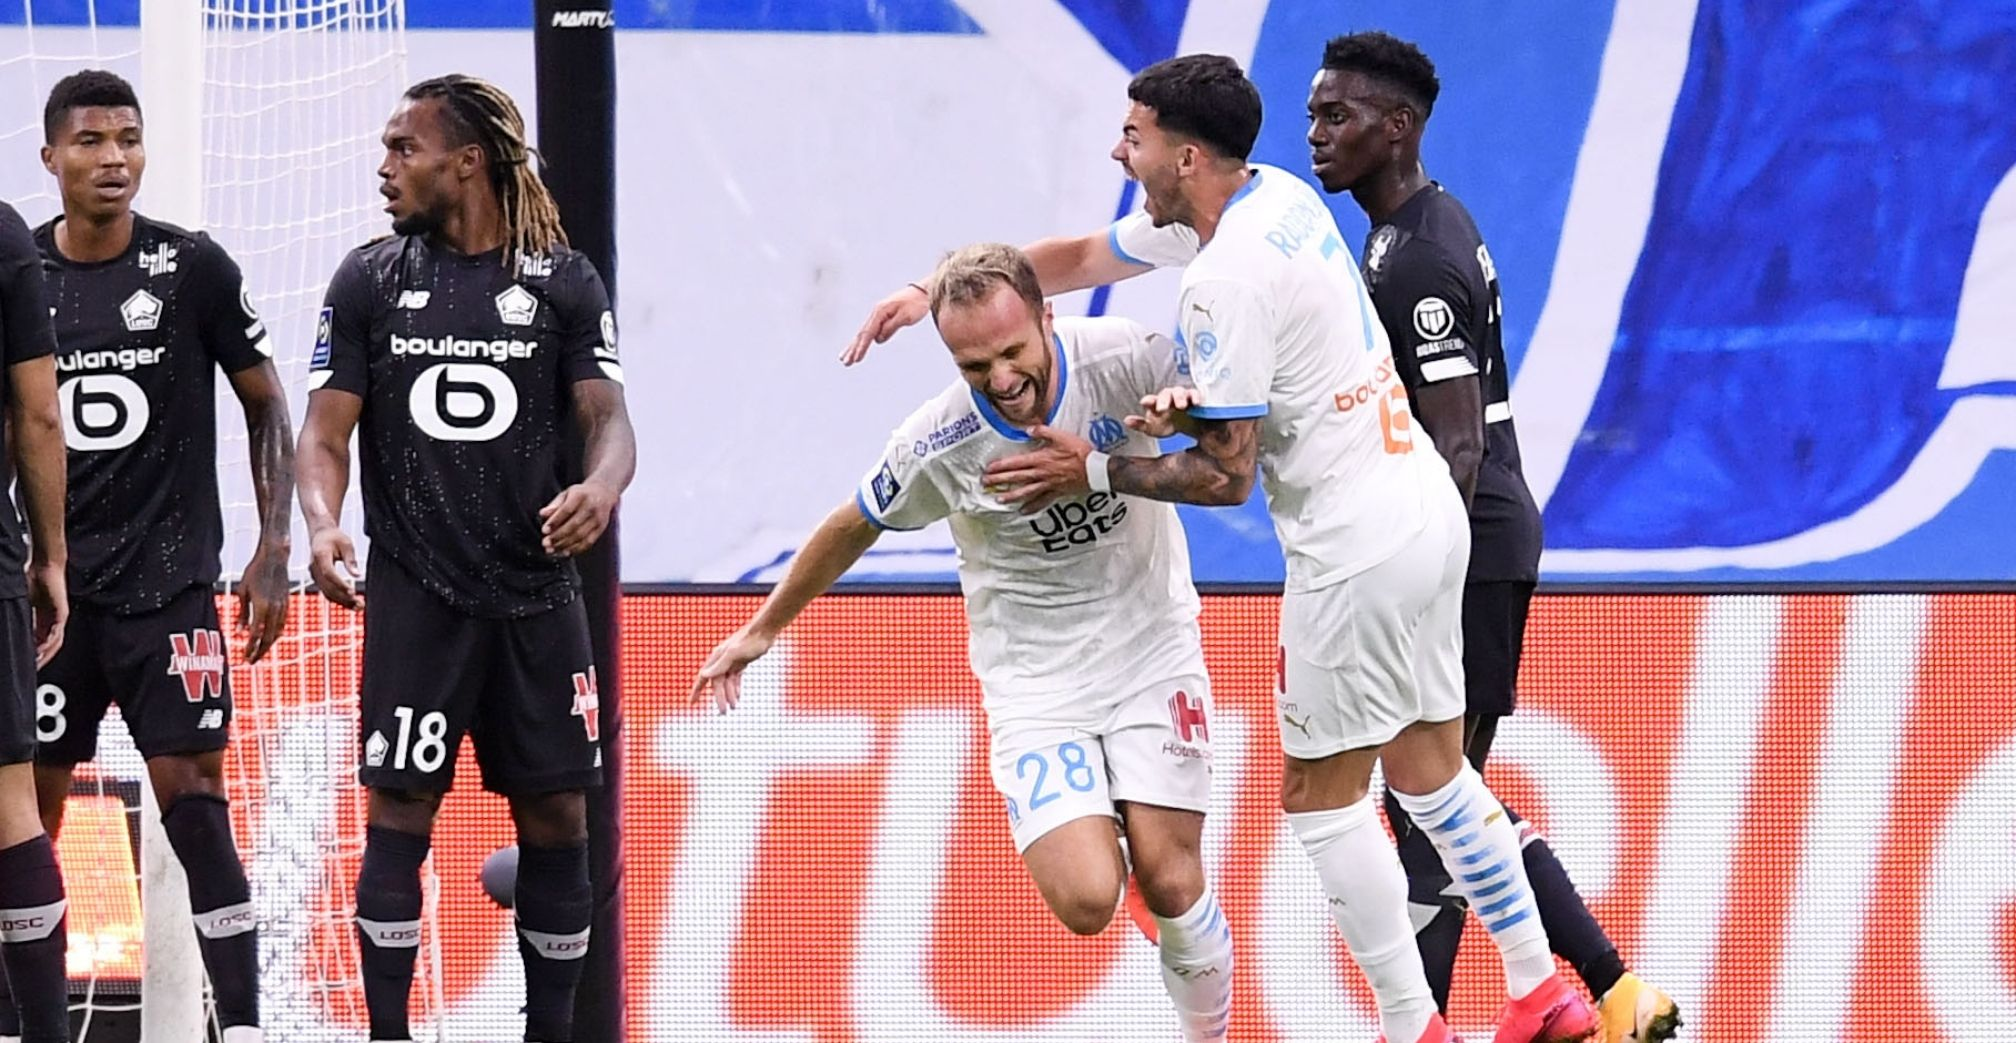 OM Marseille Valère Germain Morgan Sanson LOSC Renato Sanches